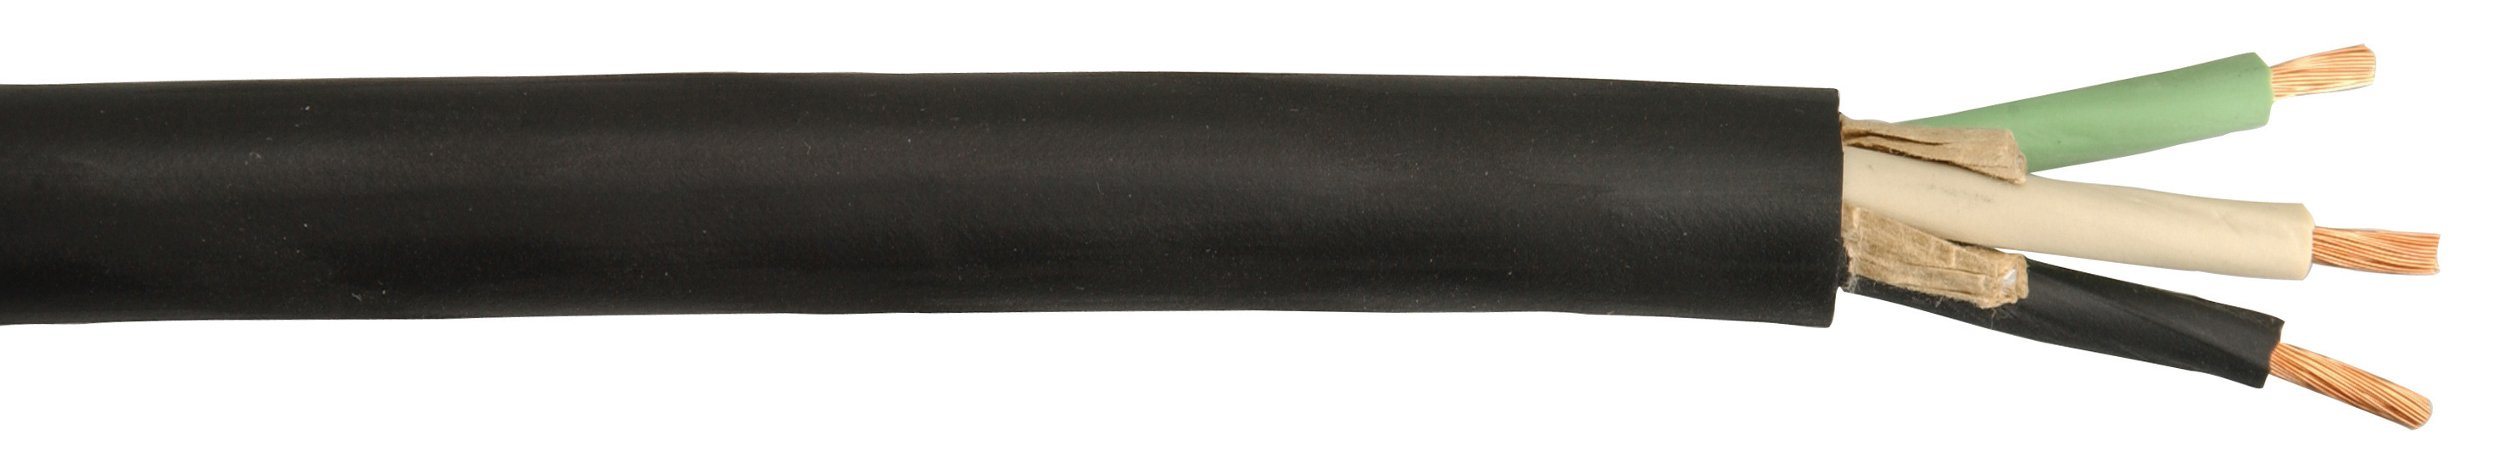 1000 ft 14/4 Royal SJOOW Power Cable